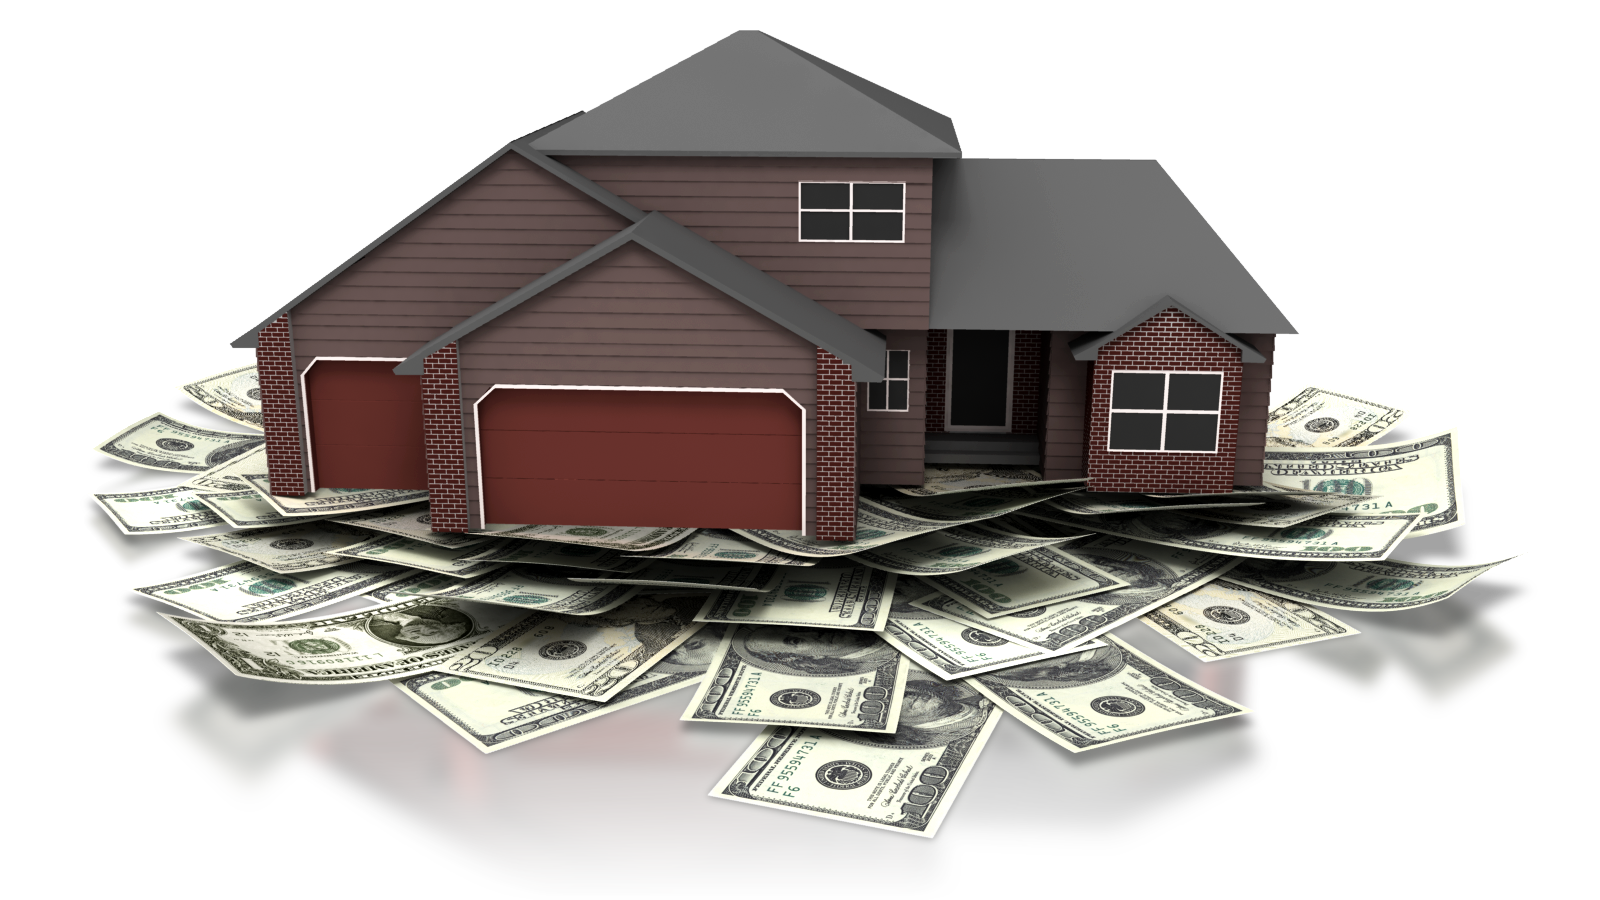 house_on_money_image.png